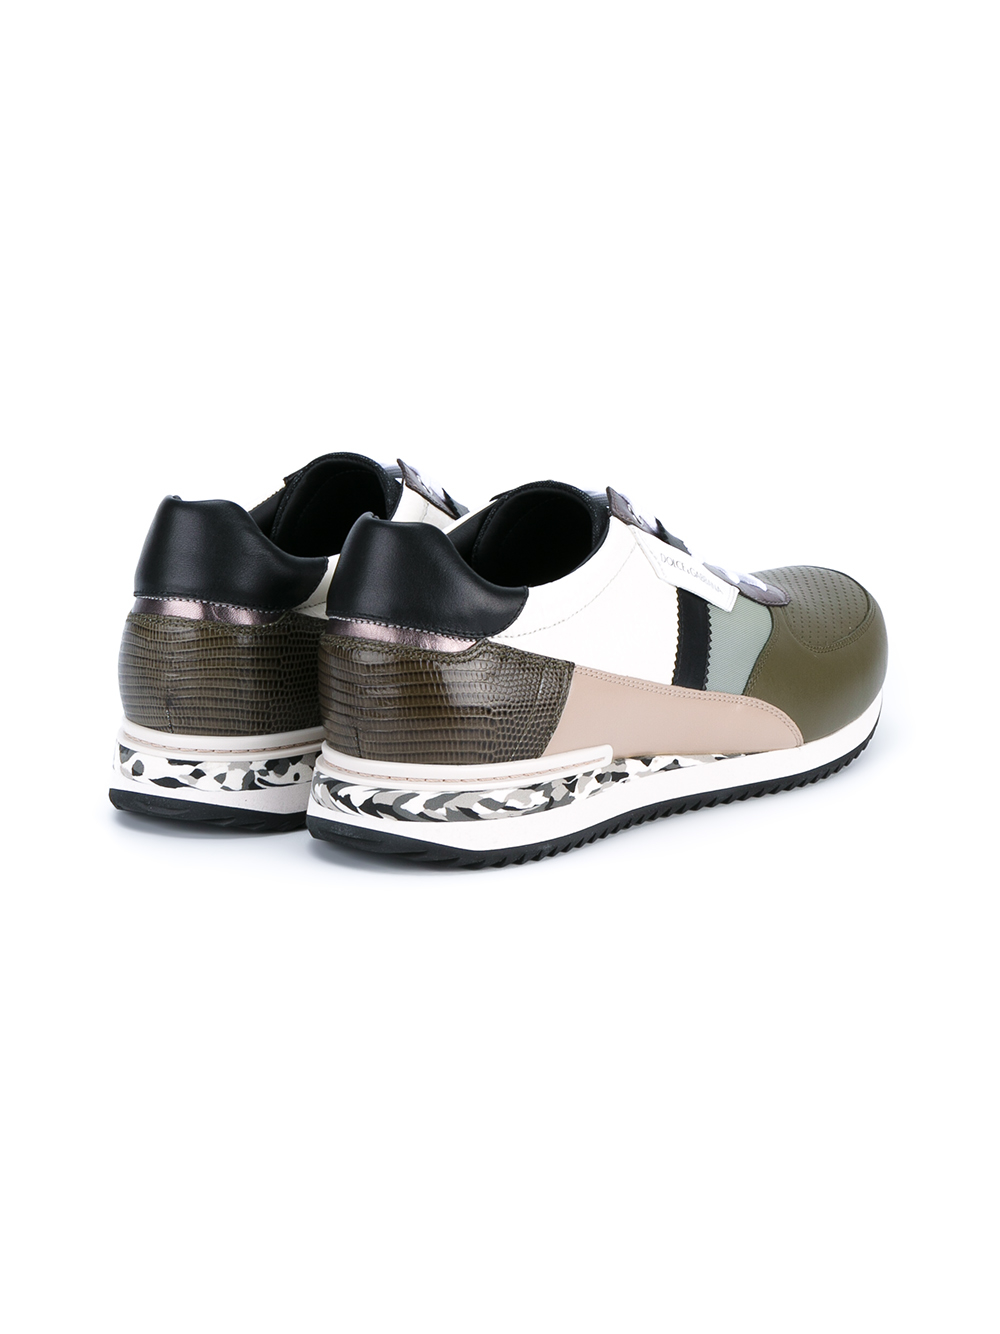 Dolce & Gabbana Leather Panelled Camo Sneakers in Khaki (Natural)